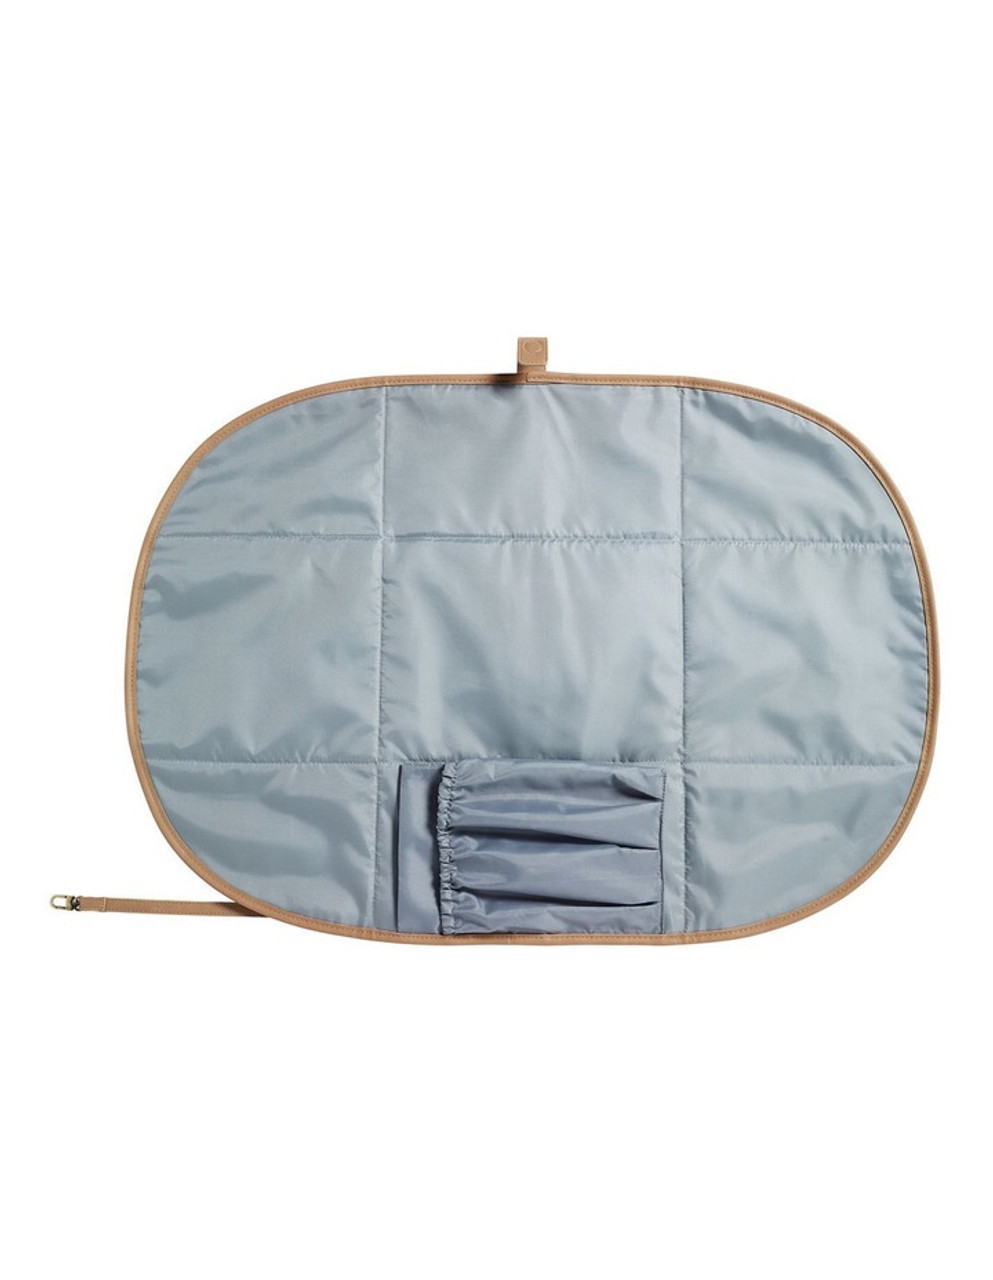 JJ Cole Changing Clutch at Baby Barn Discounts JJ cole  stylish and practical changing clutch is the way to carry all of your baby necessities.